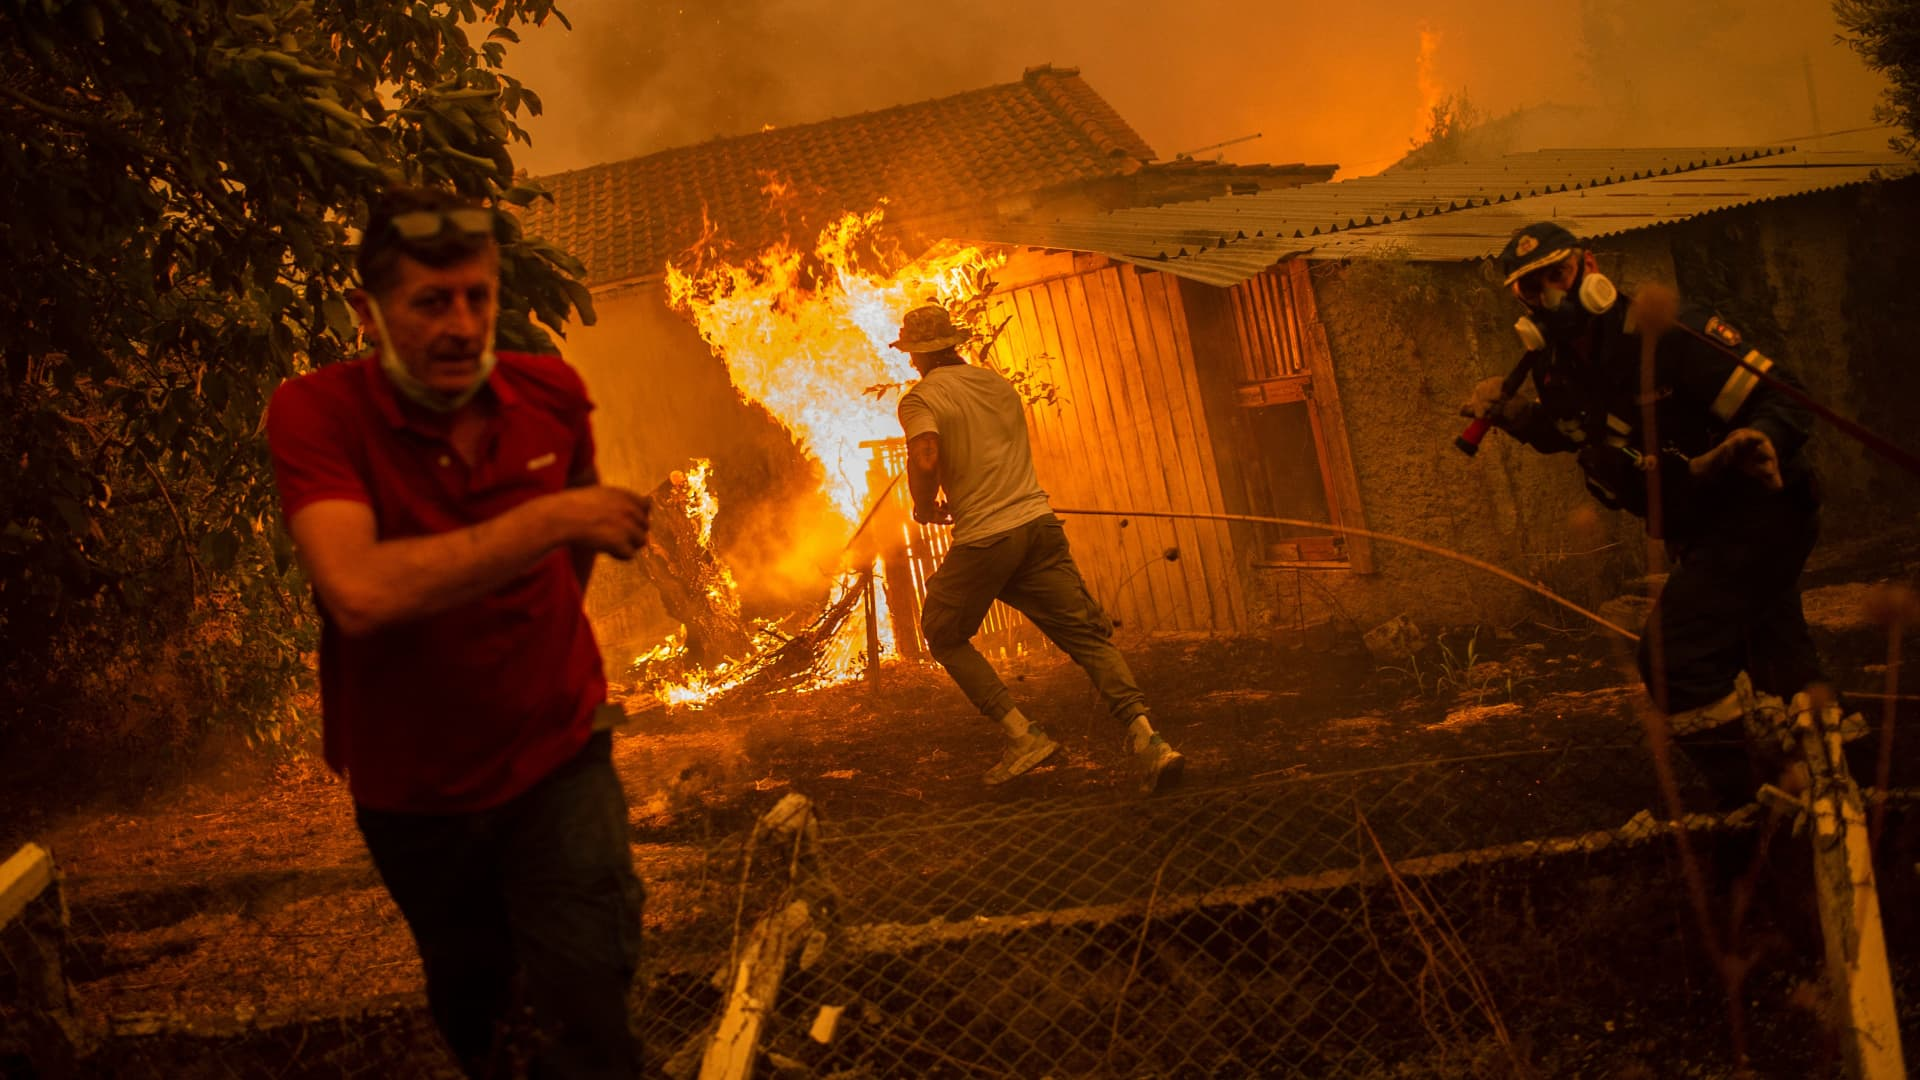 A firefighter and locals rush to a burning house in an attempt to extinguish forest fires that are approaching the village of Pefki on Evia (Euboea) island on August 8, 2021.